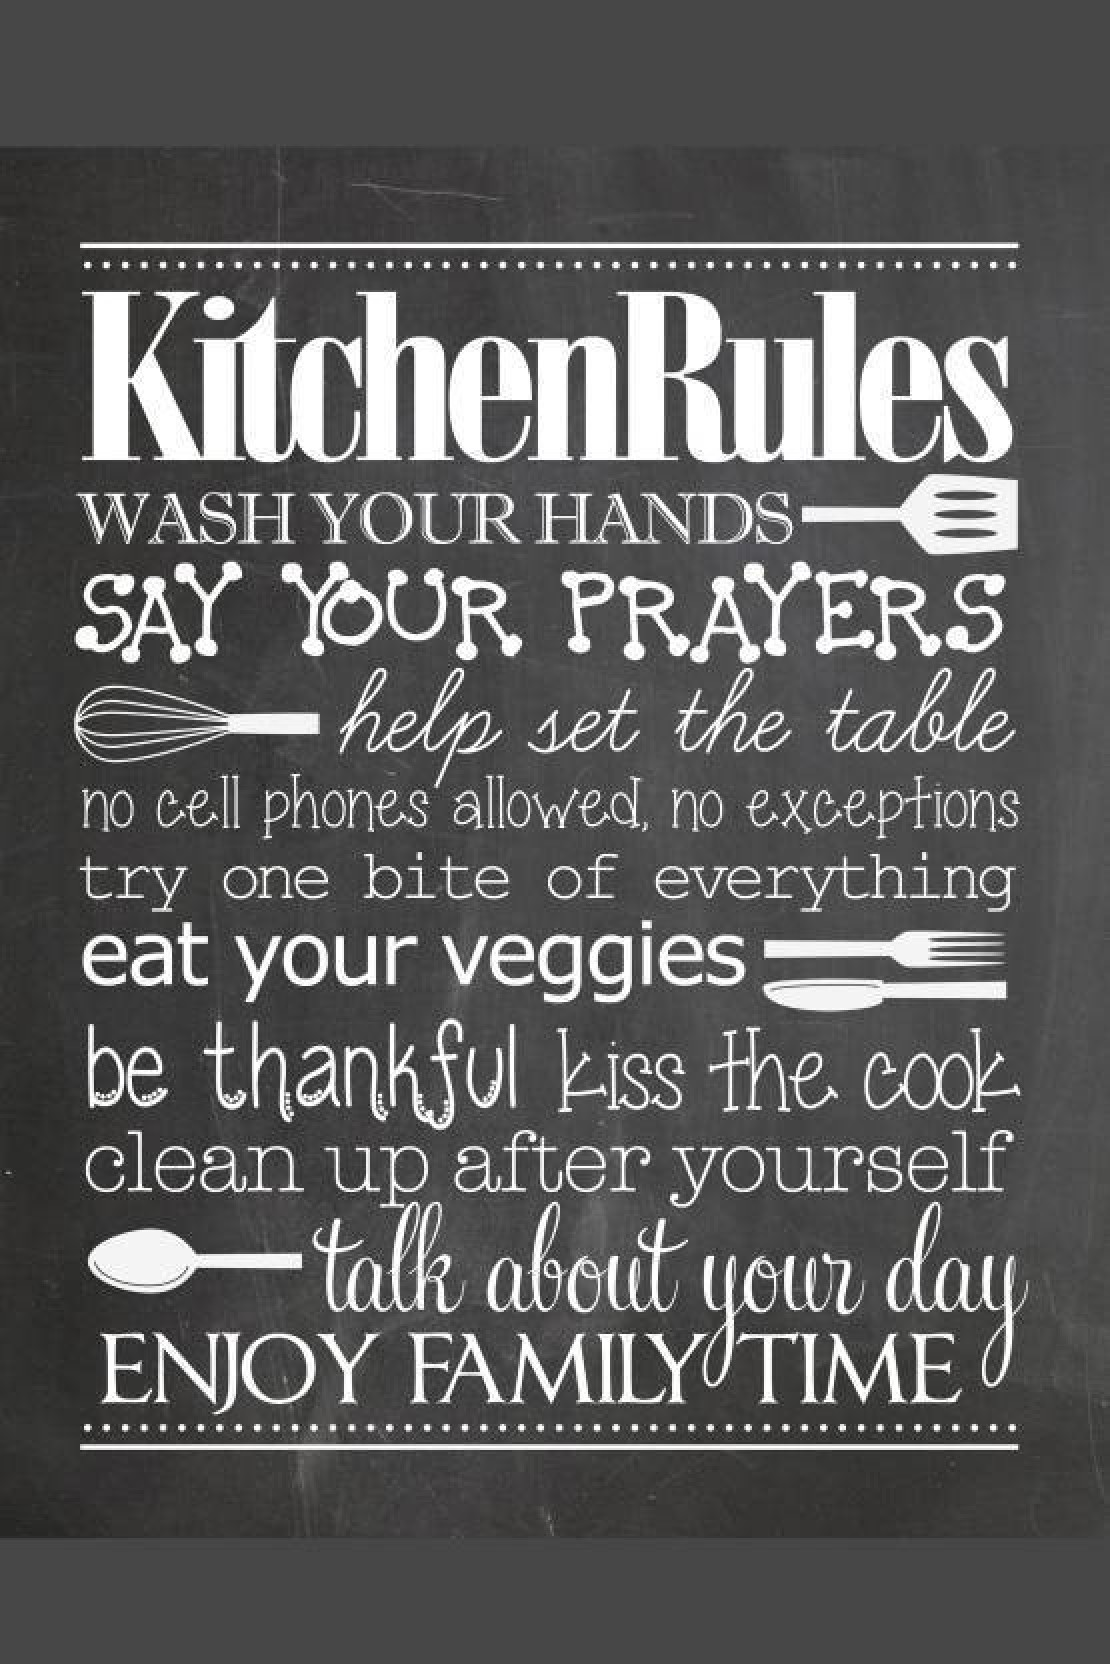 Wingage oshi kitchen rules paper printed poster 12x18inch paper print 18 inch x 12 inch